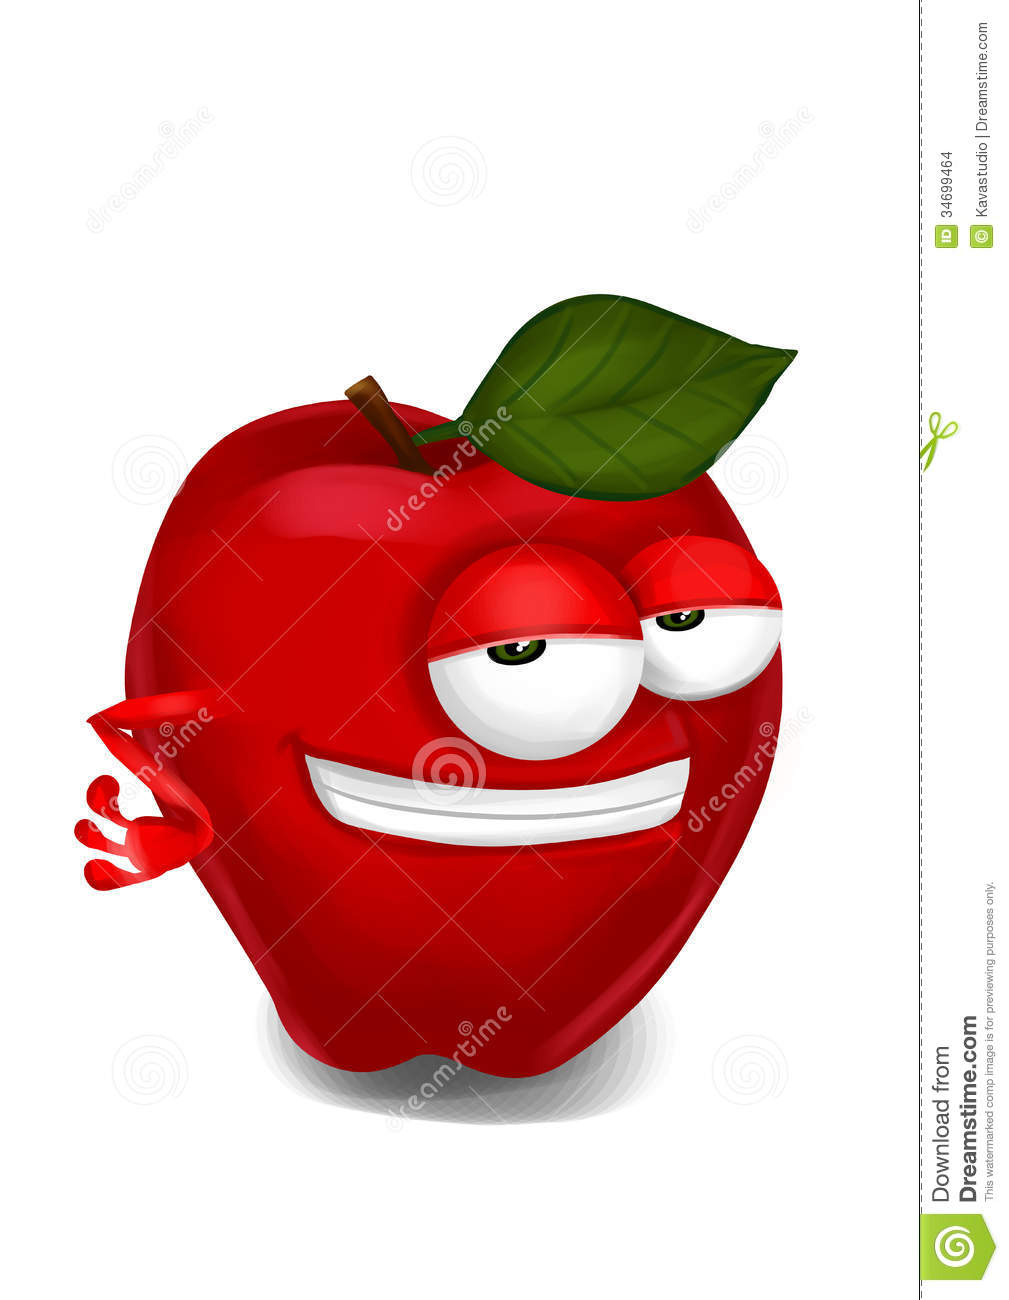 cool apple stock images - image: 34699464